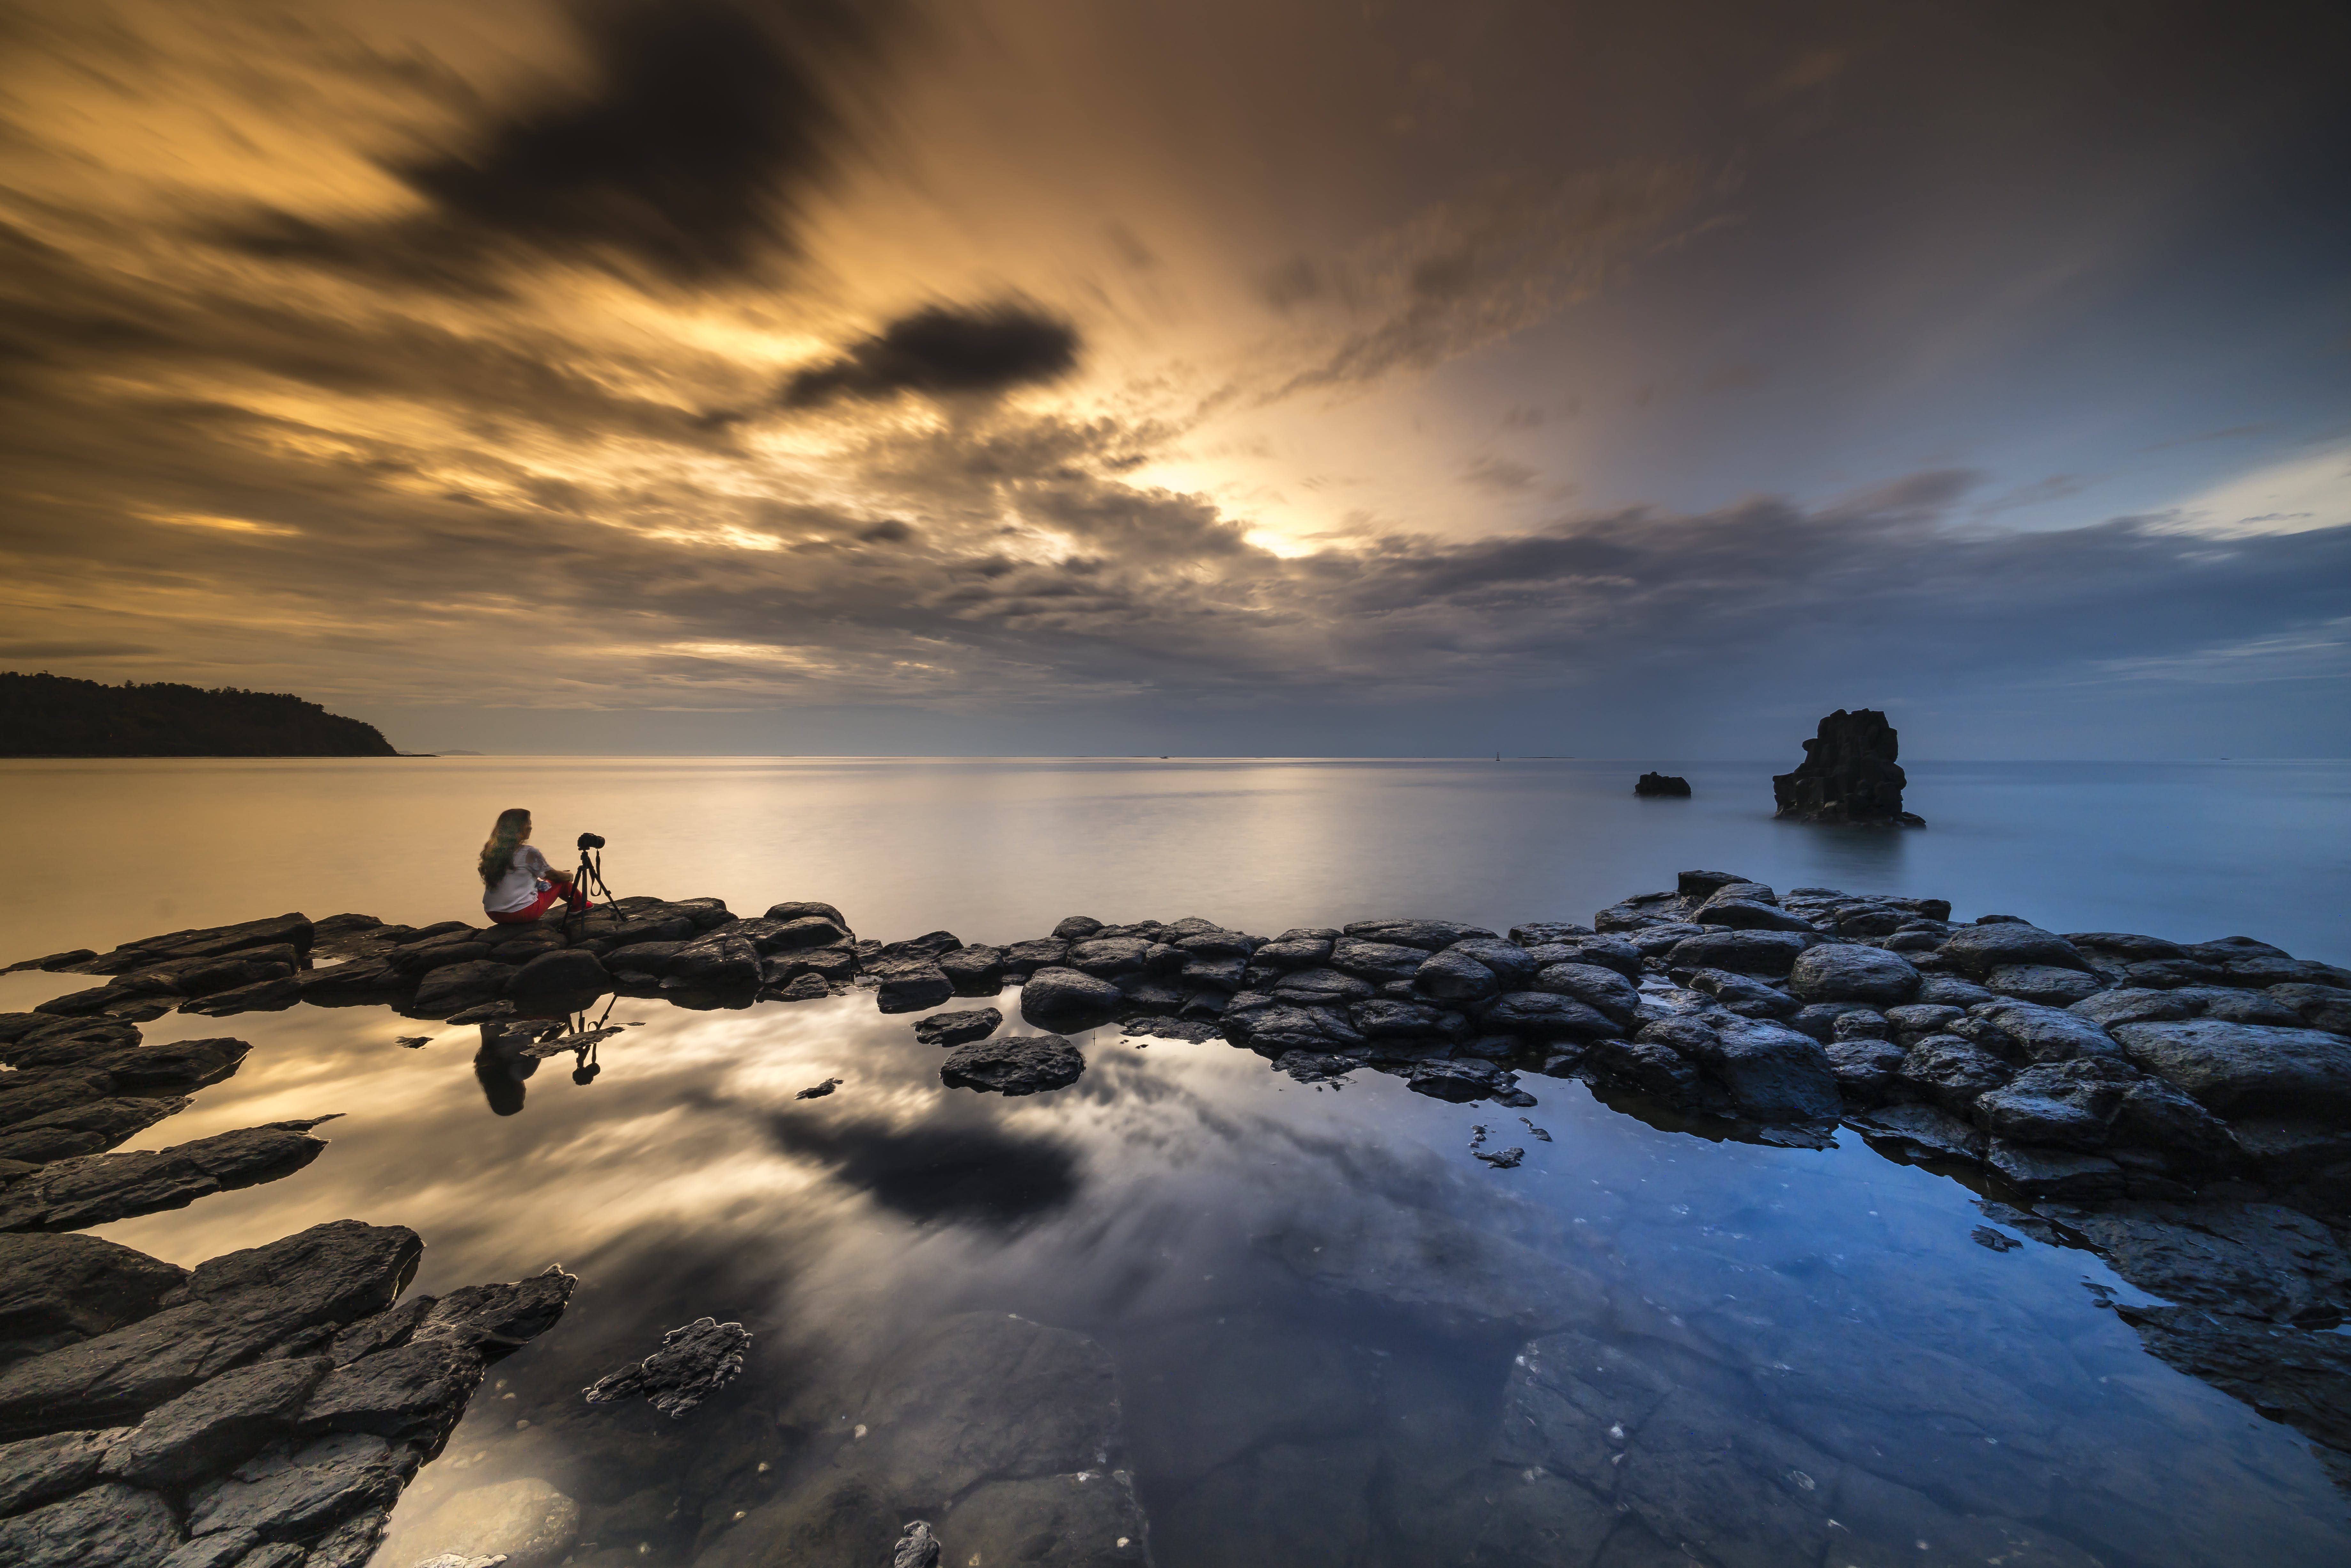 Person Sitting On Stone While Facing The Calm Sea During Sunset